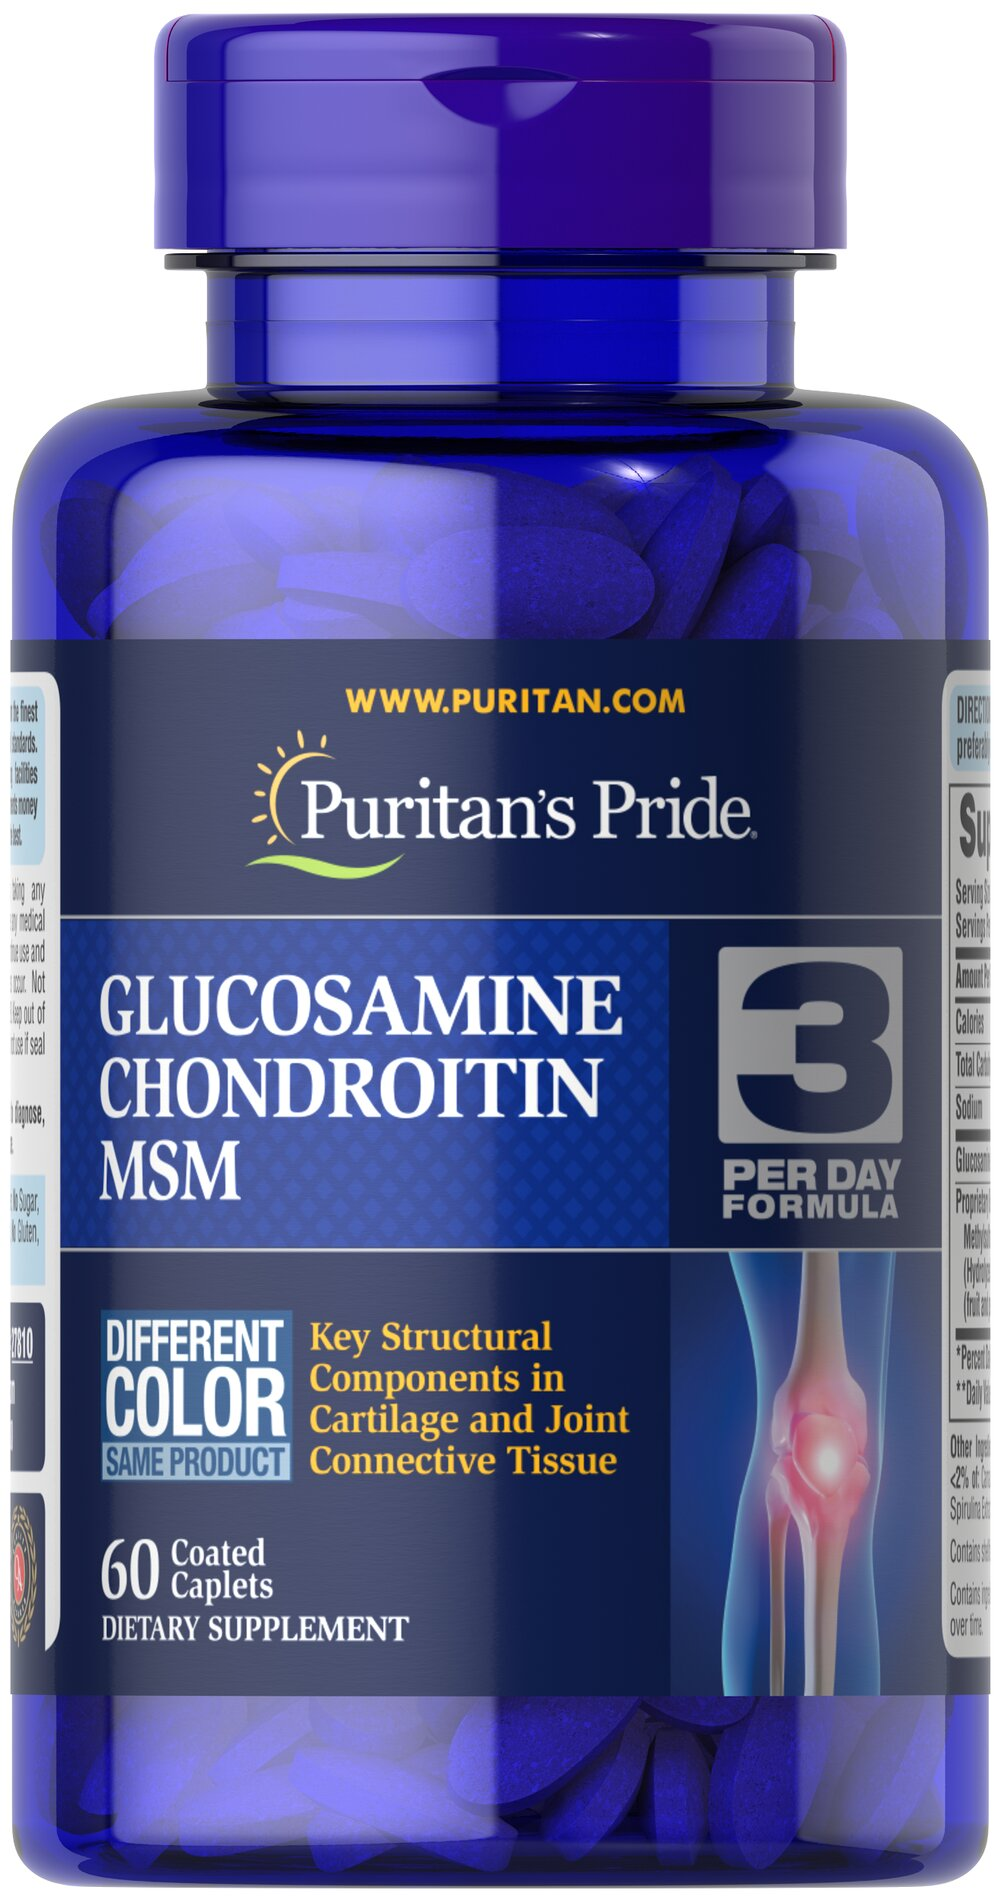 Double Strength Glucosamine, Chondroitin & MSM Joint Soother® <p>Combines the top three structural components found in popular joint support products — Glucosamine, Chondroitin and MSM — with amino and herbal support from Collagen and Boswellia Serrata**</p><p>This high-quality formula delivers 1,500 mg of Glucosamine Sulfate to help support cartilage, lubricate the joints, and helps with occasional joint stress due to exercise or physical activity**</p> 60 Caple